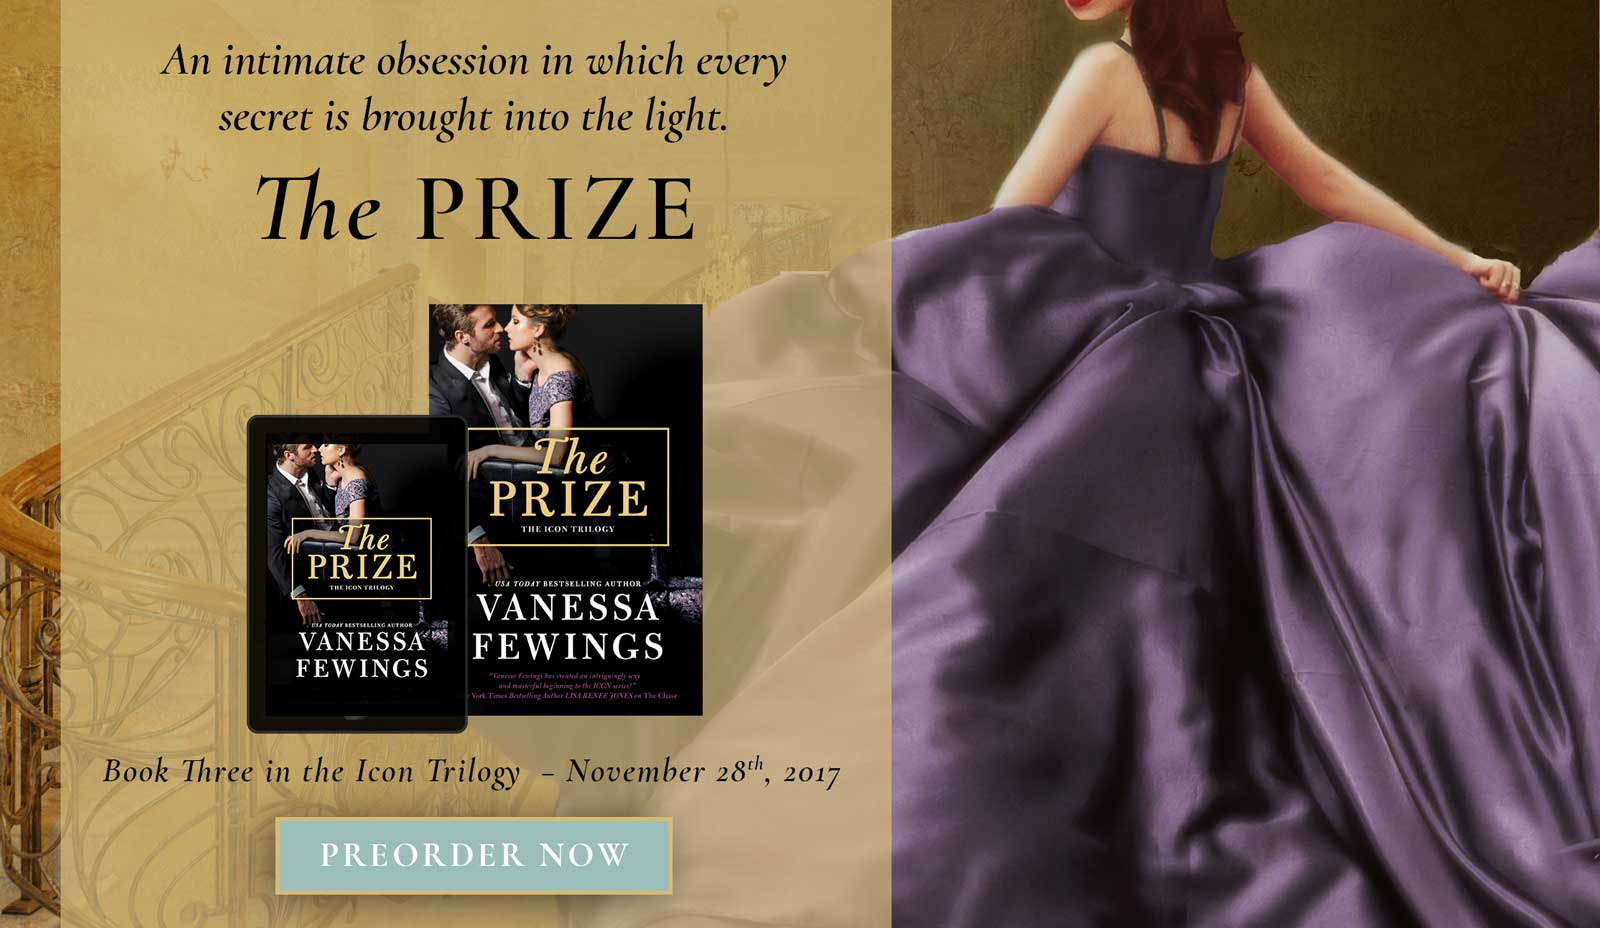 The Prize, the final book in the Icon Trilogy by USA Today Bestselling romance author Vanessa Fewings